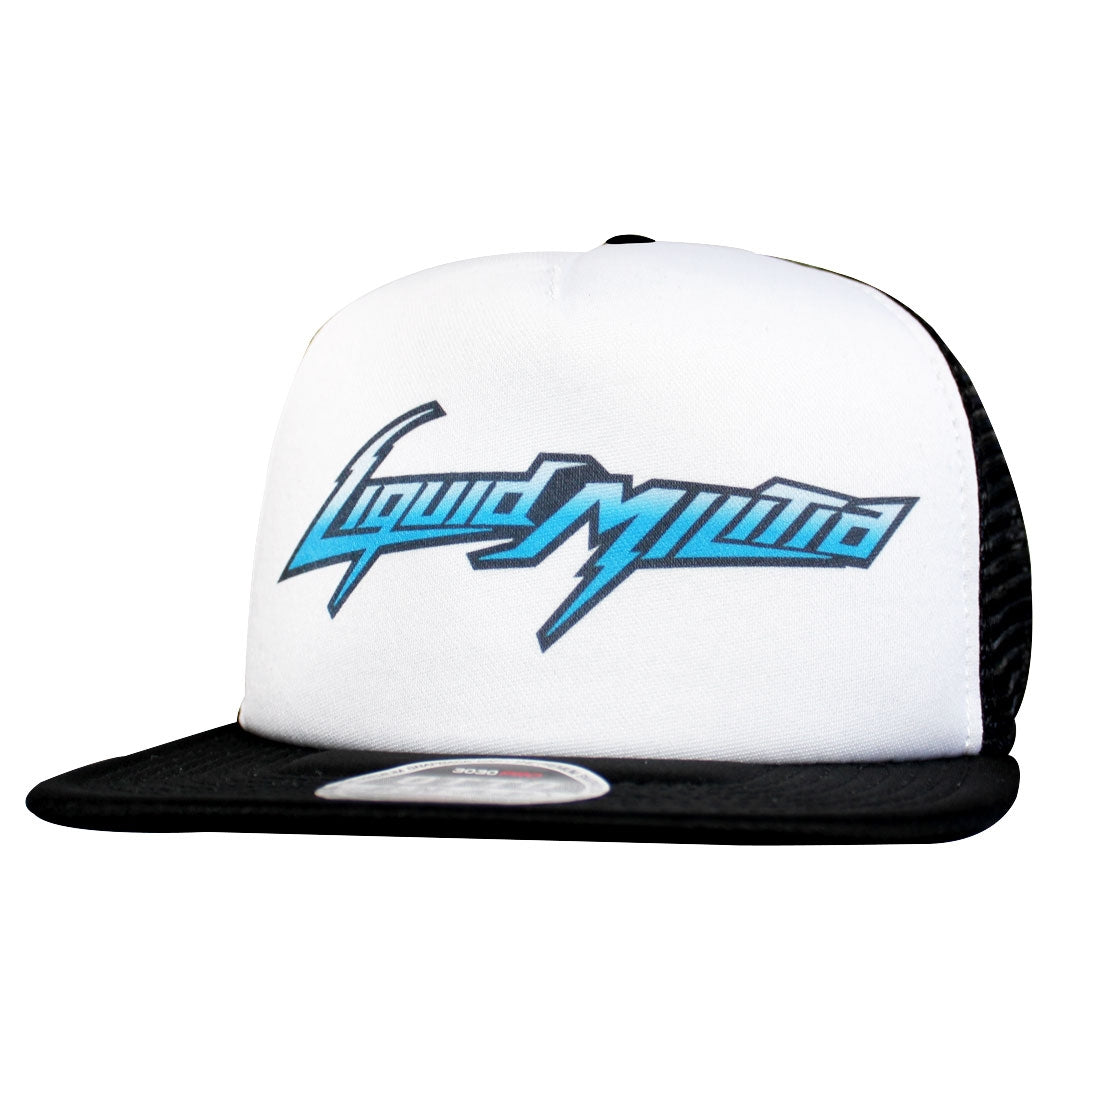 Fuse Blue Flat Bill Trucker Hat in Black White Black - Front View